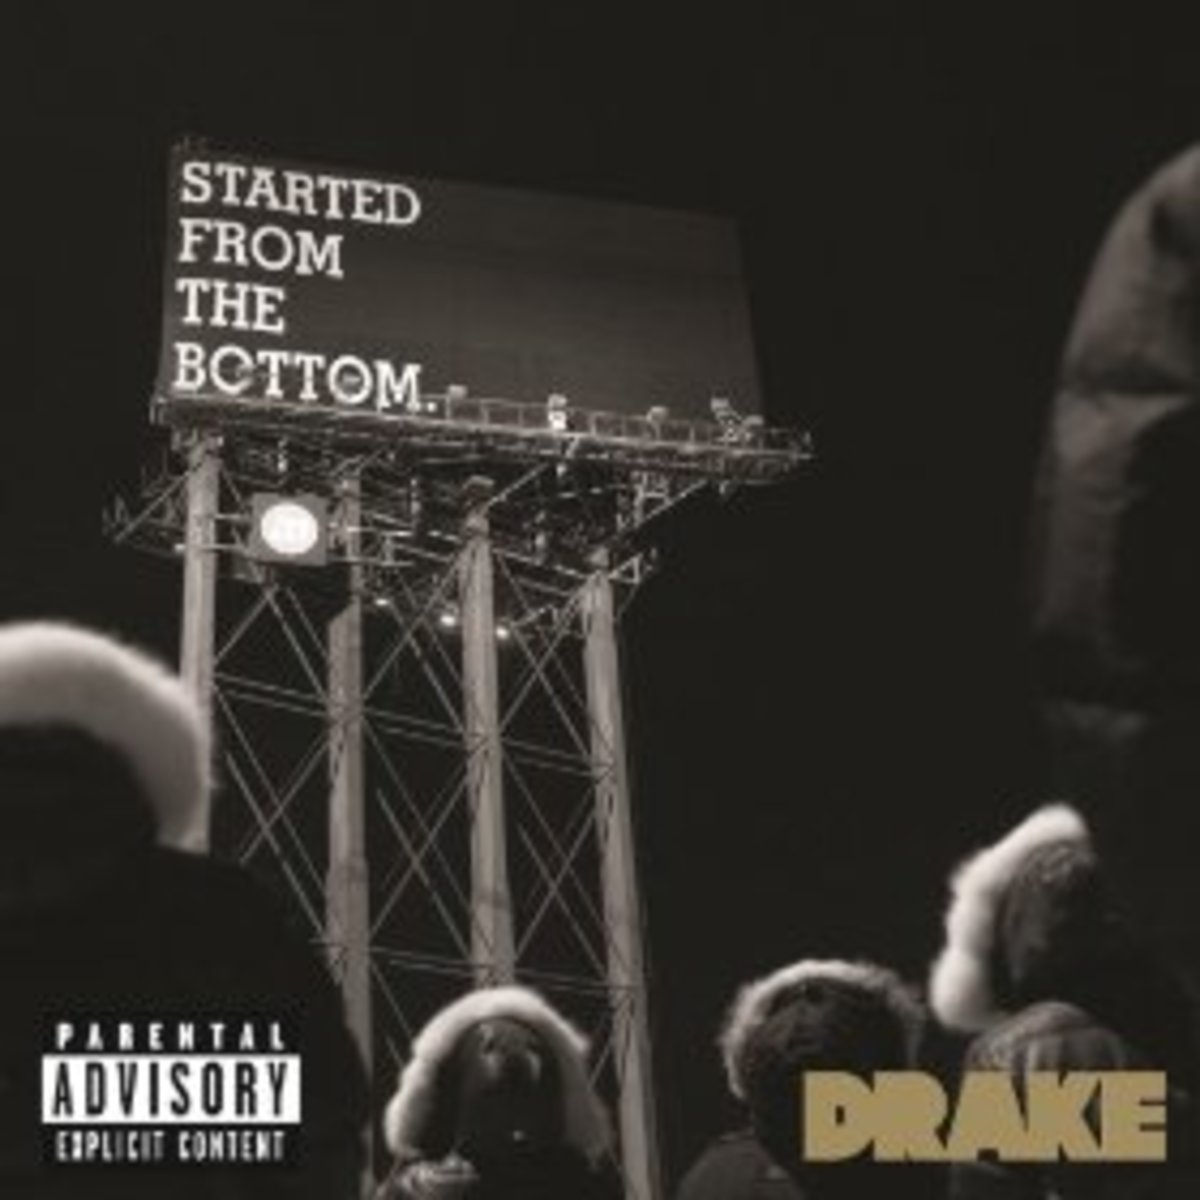 drake-songs-started-from-the-bottom-meaning-and-lyrics-song-of-the-week-8413-81013